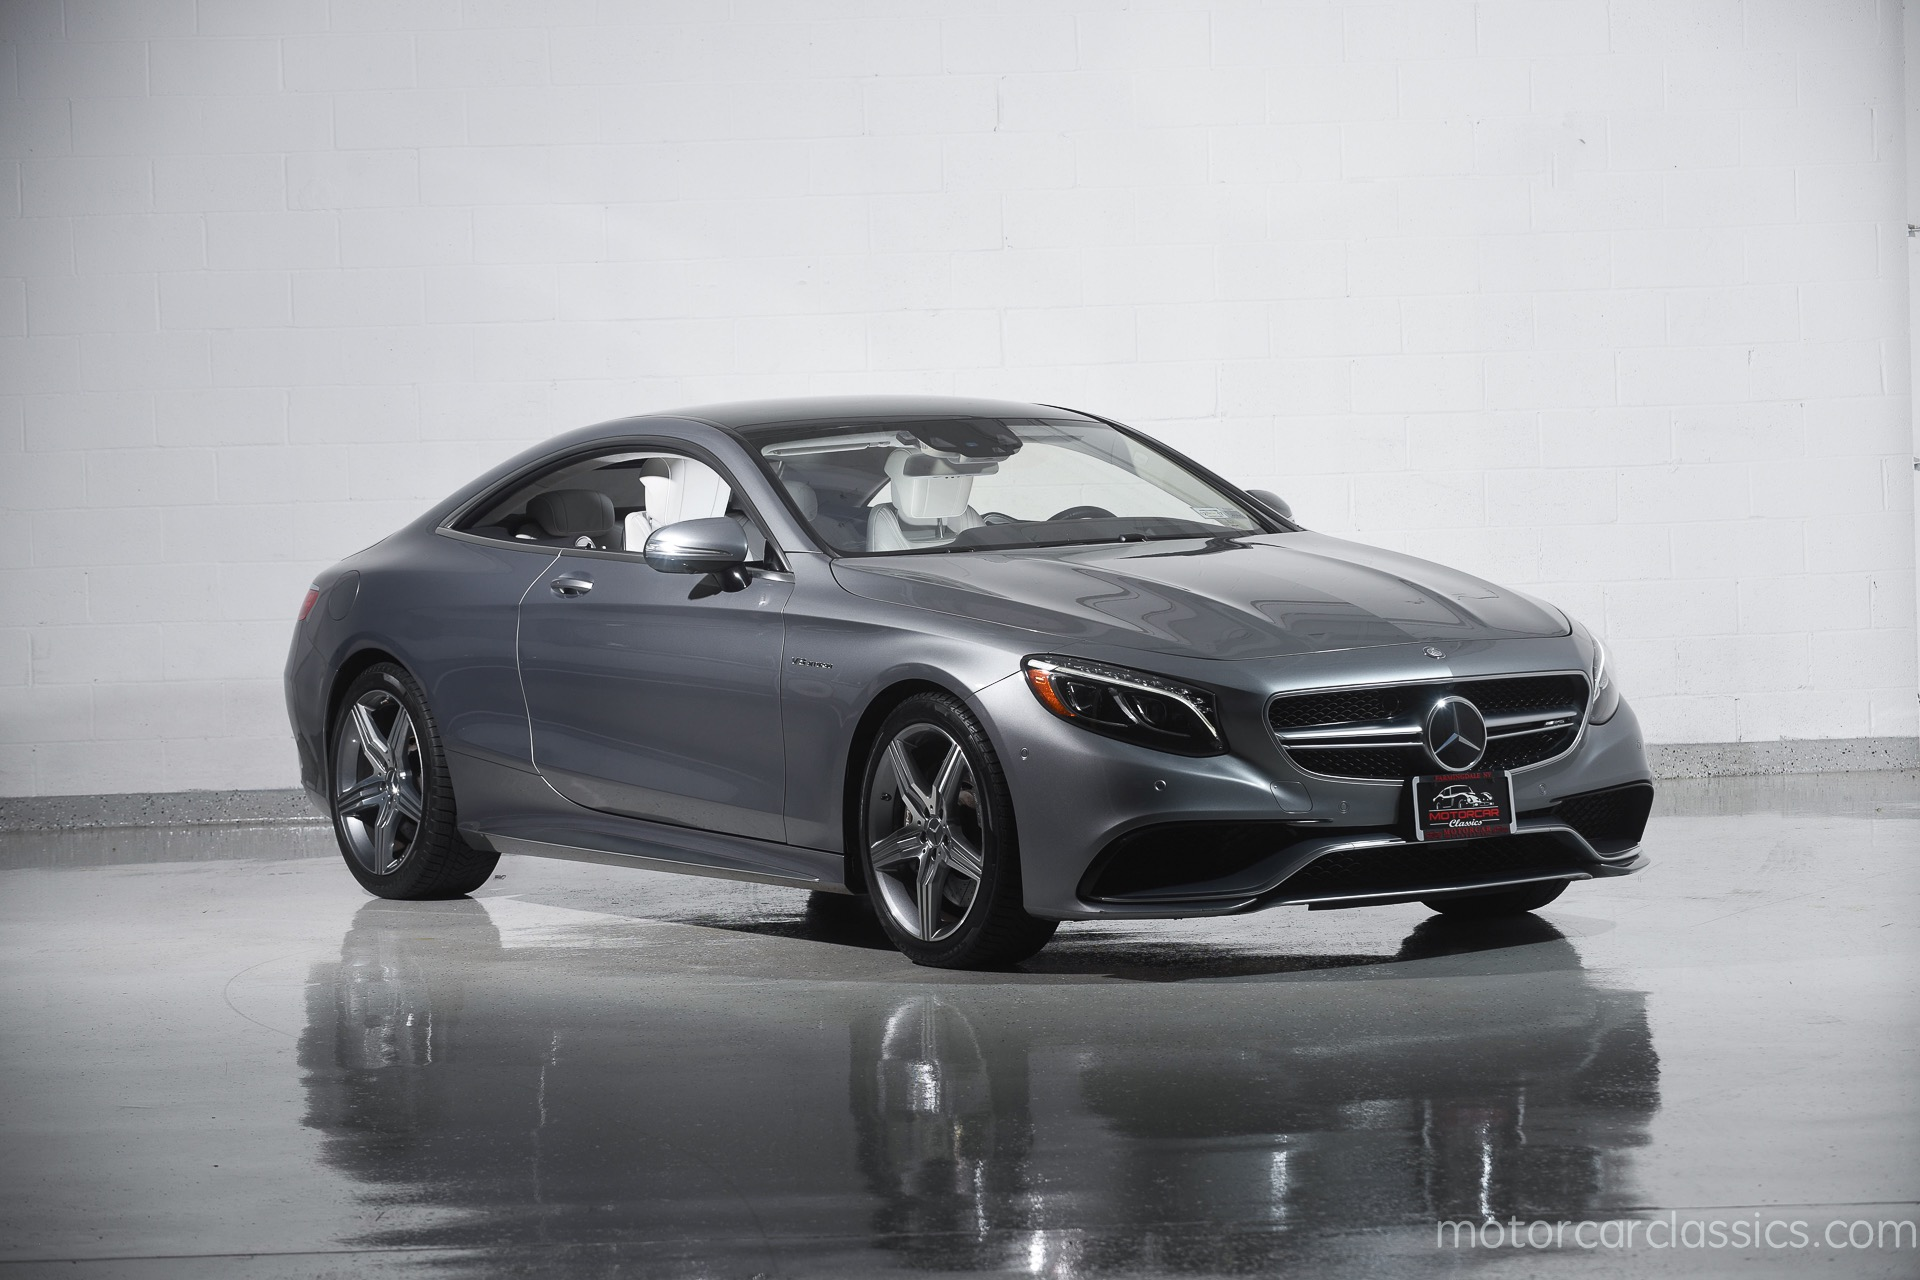 2015 mercedes benz s63 amg s 63 amg motorcar classics for 2015 mercedes benz s63 amg price